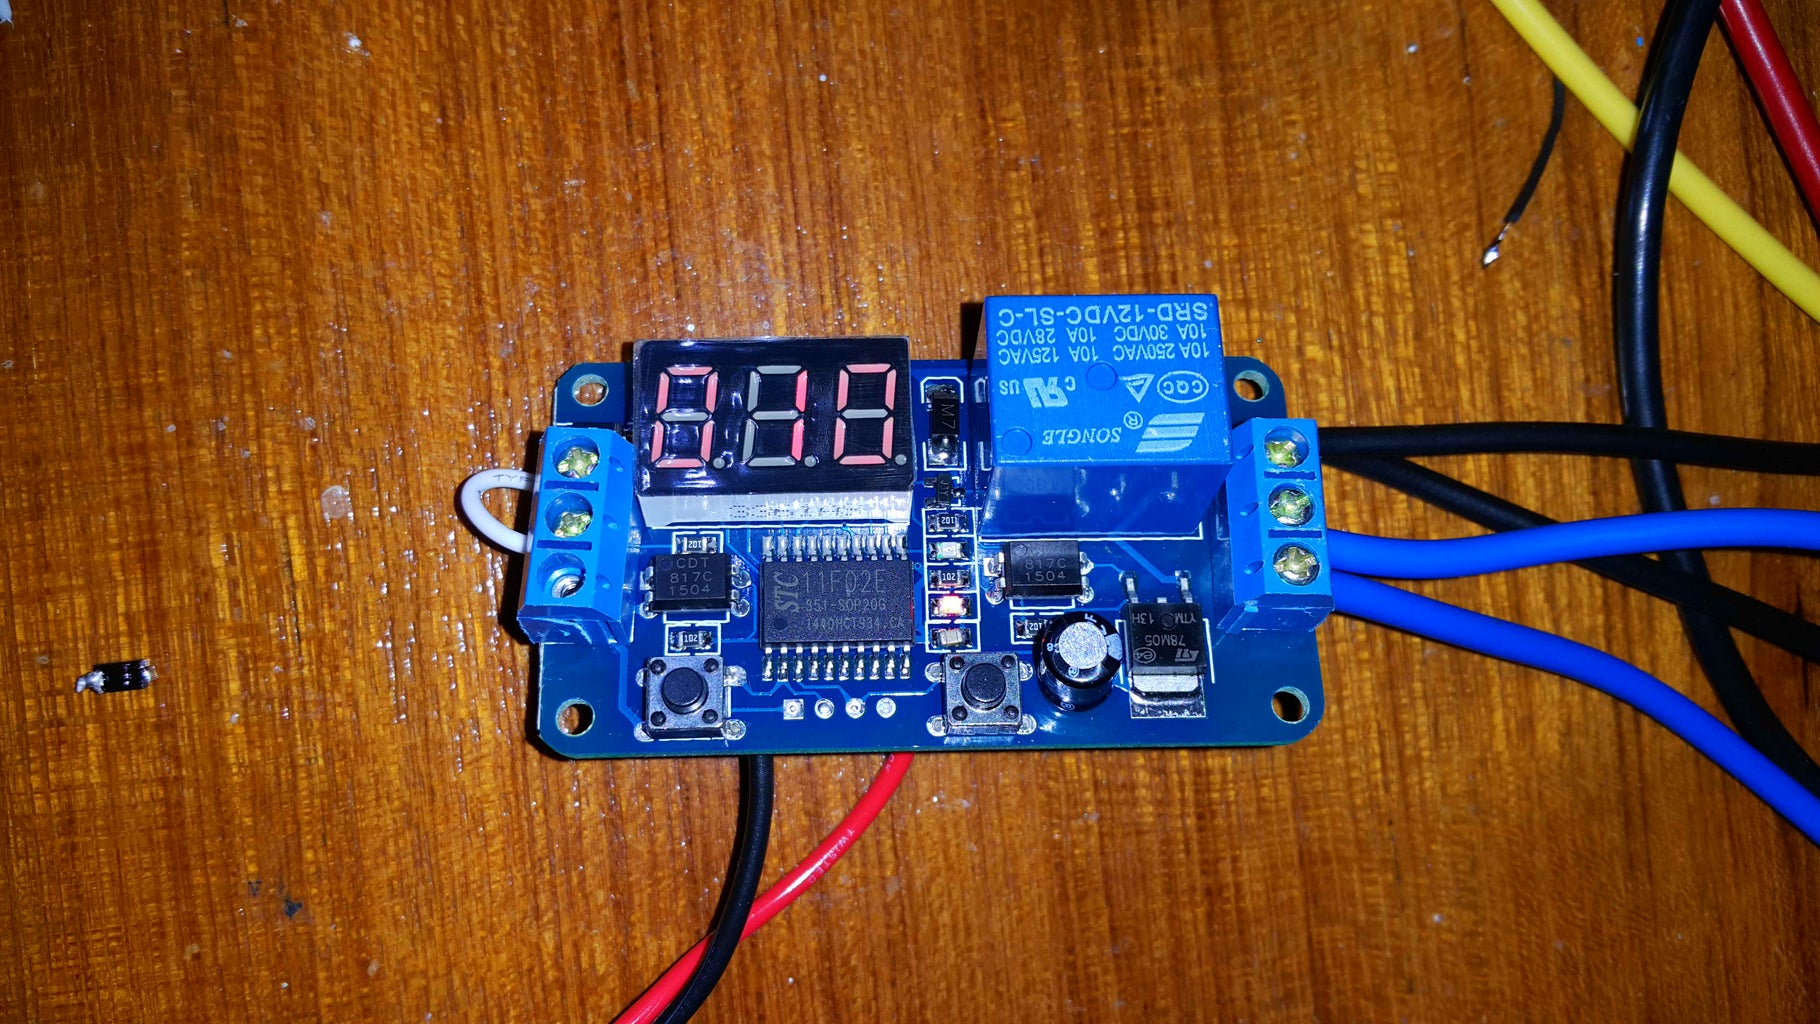 Time Delay Relay Plus Control Relays.